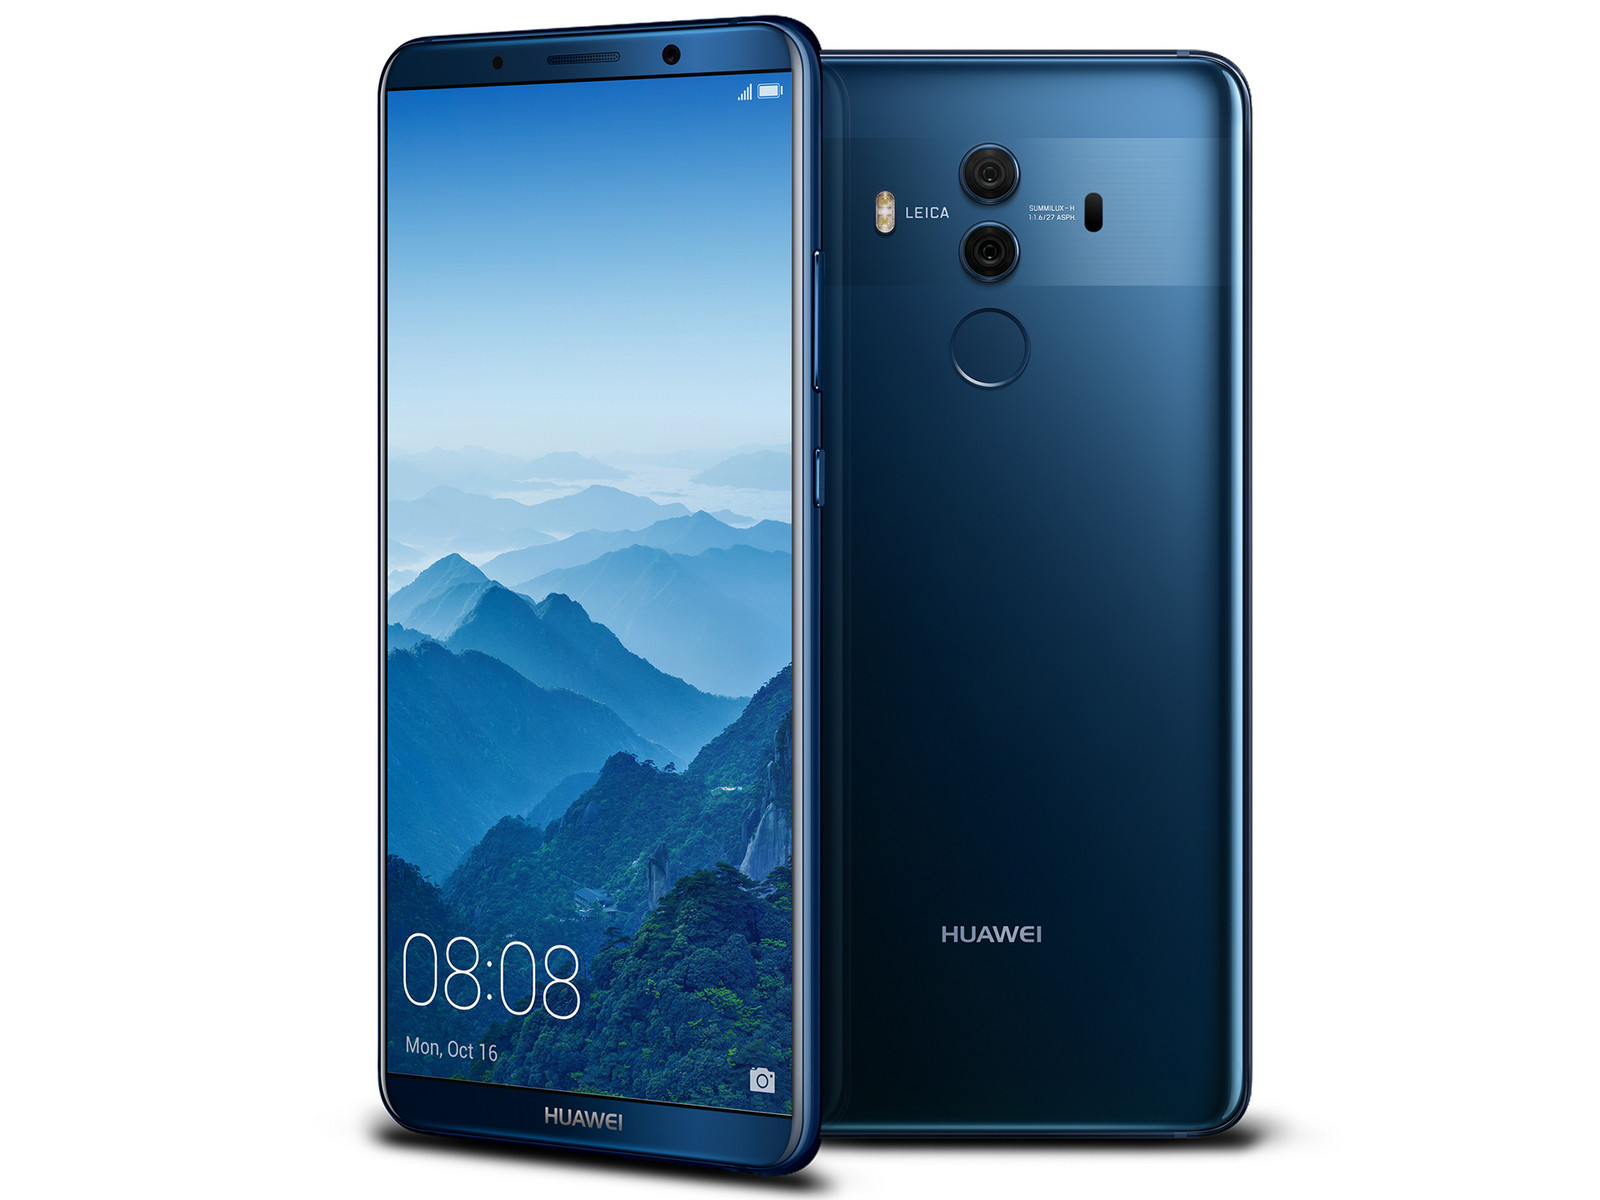 The Huawei Mate 10 Pro sees a temporary price cut